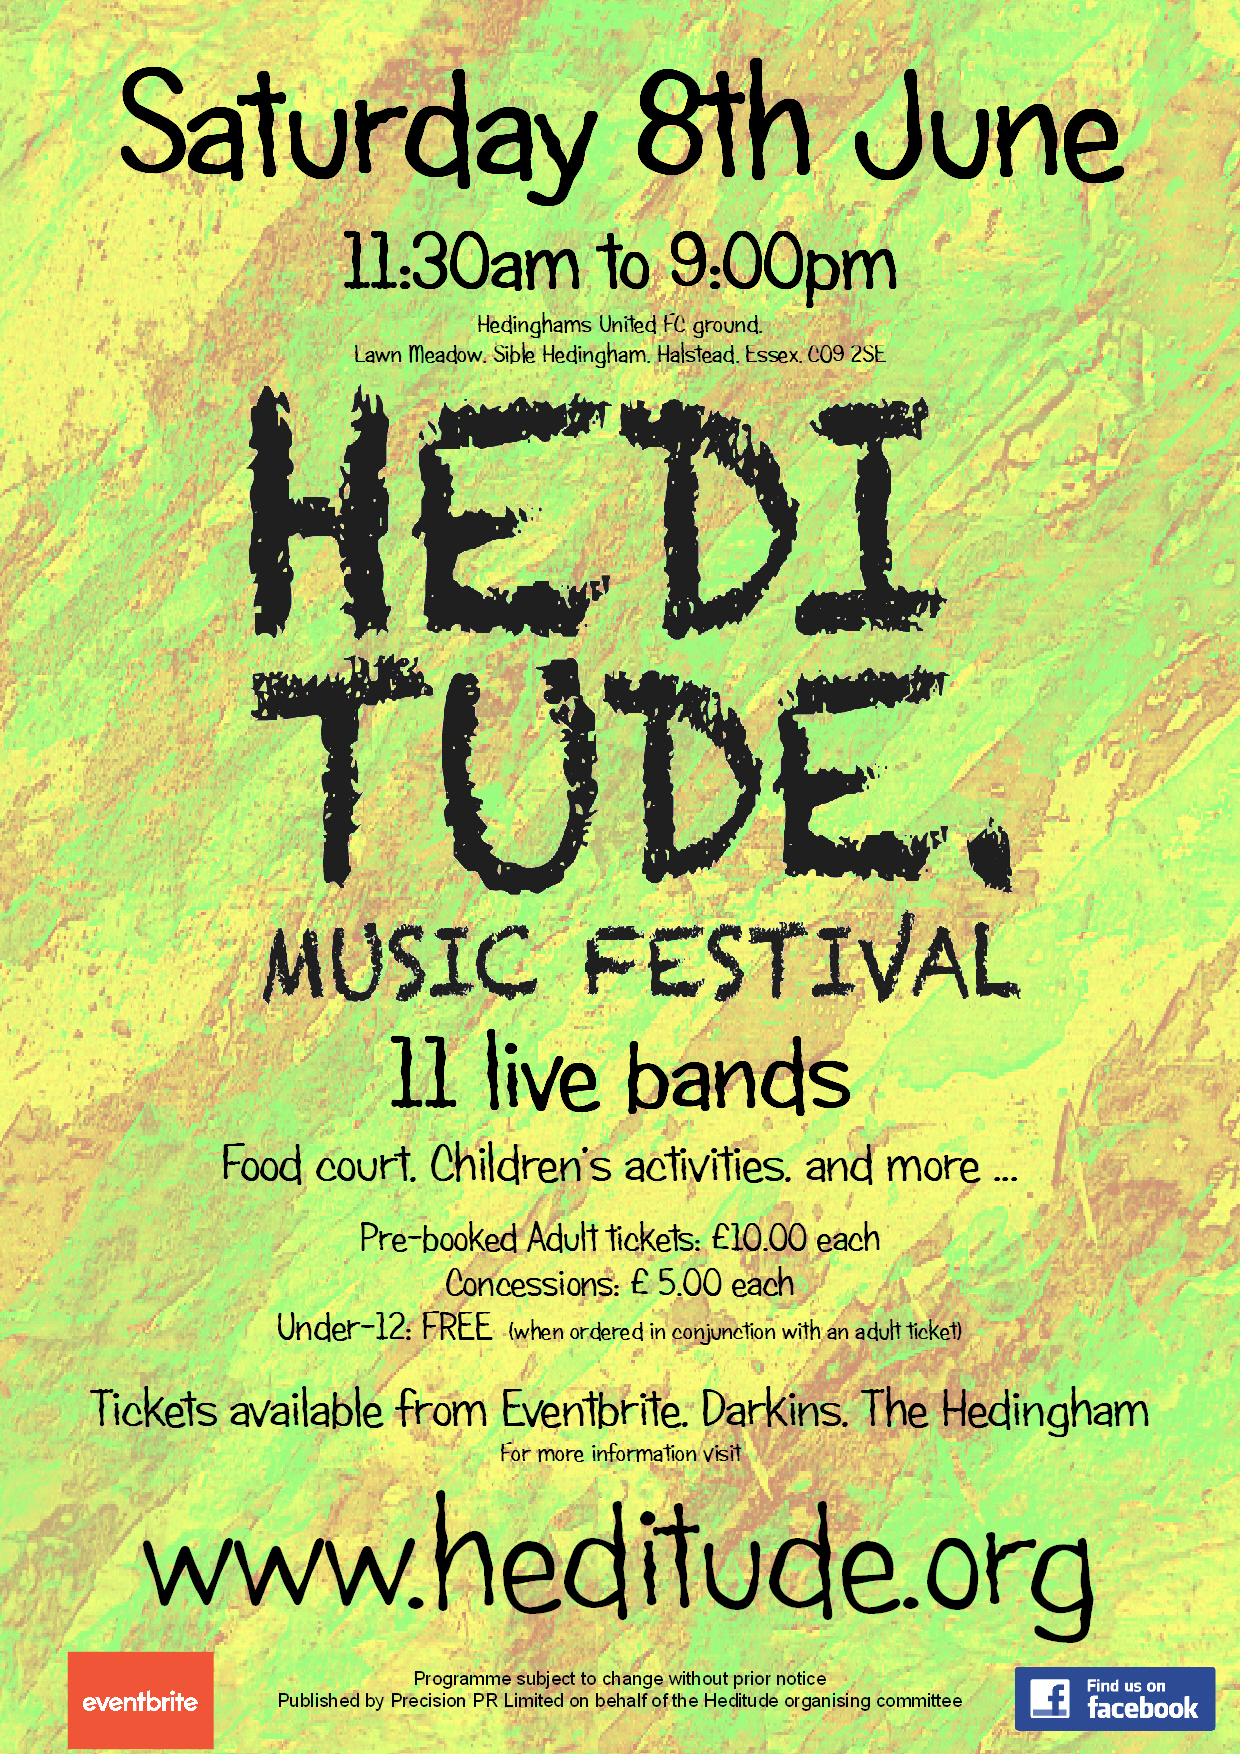 HEDITUDE Community Music Festival